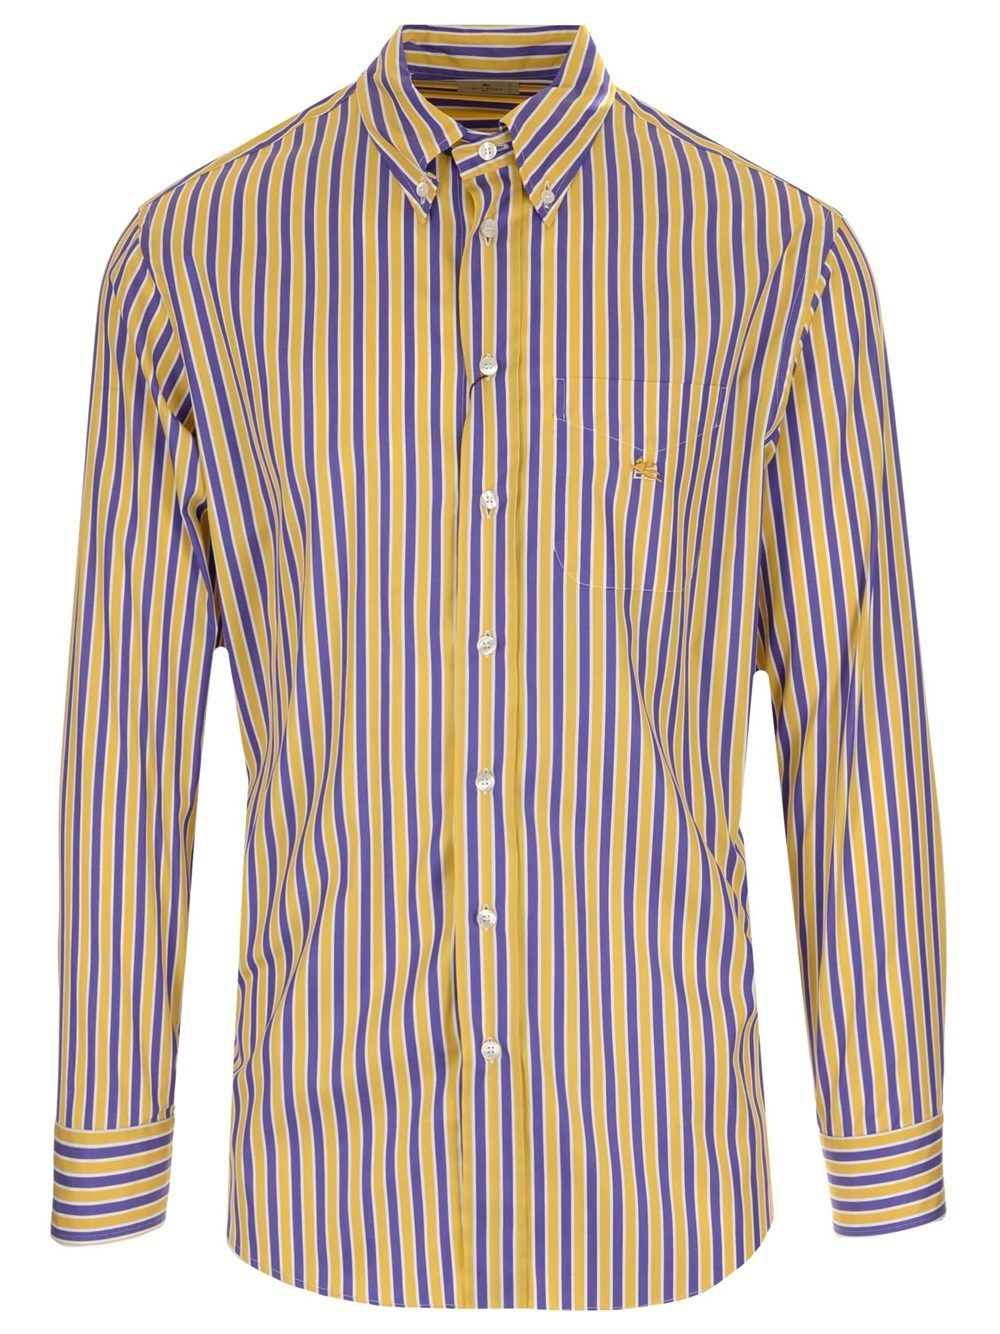 Etro ETRO MEN'S YELLOW OTHER MATERIALS SHIRT